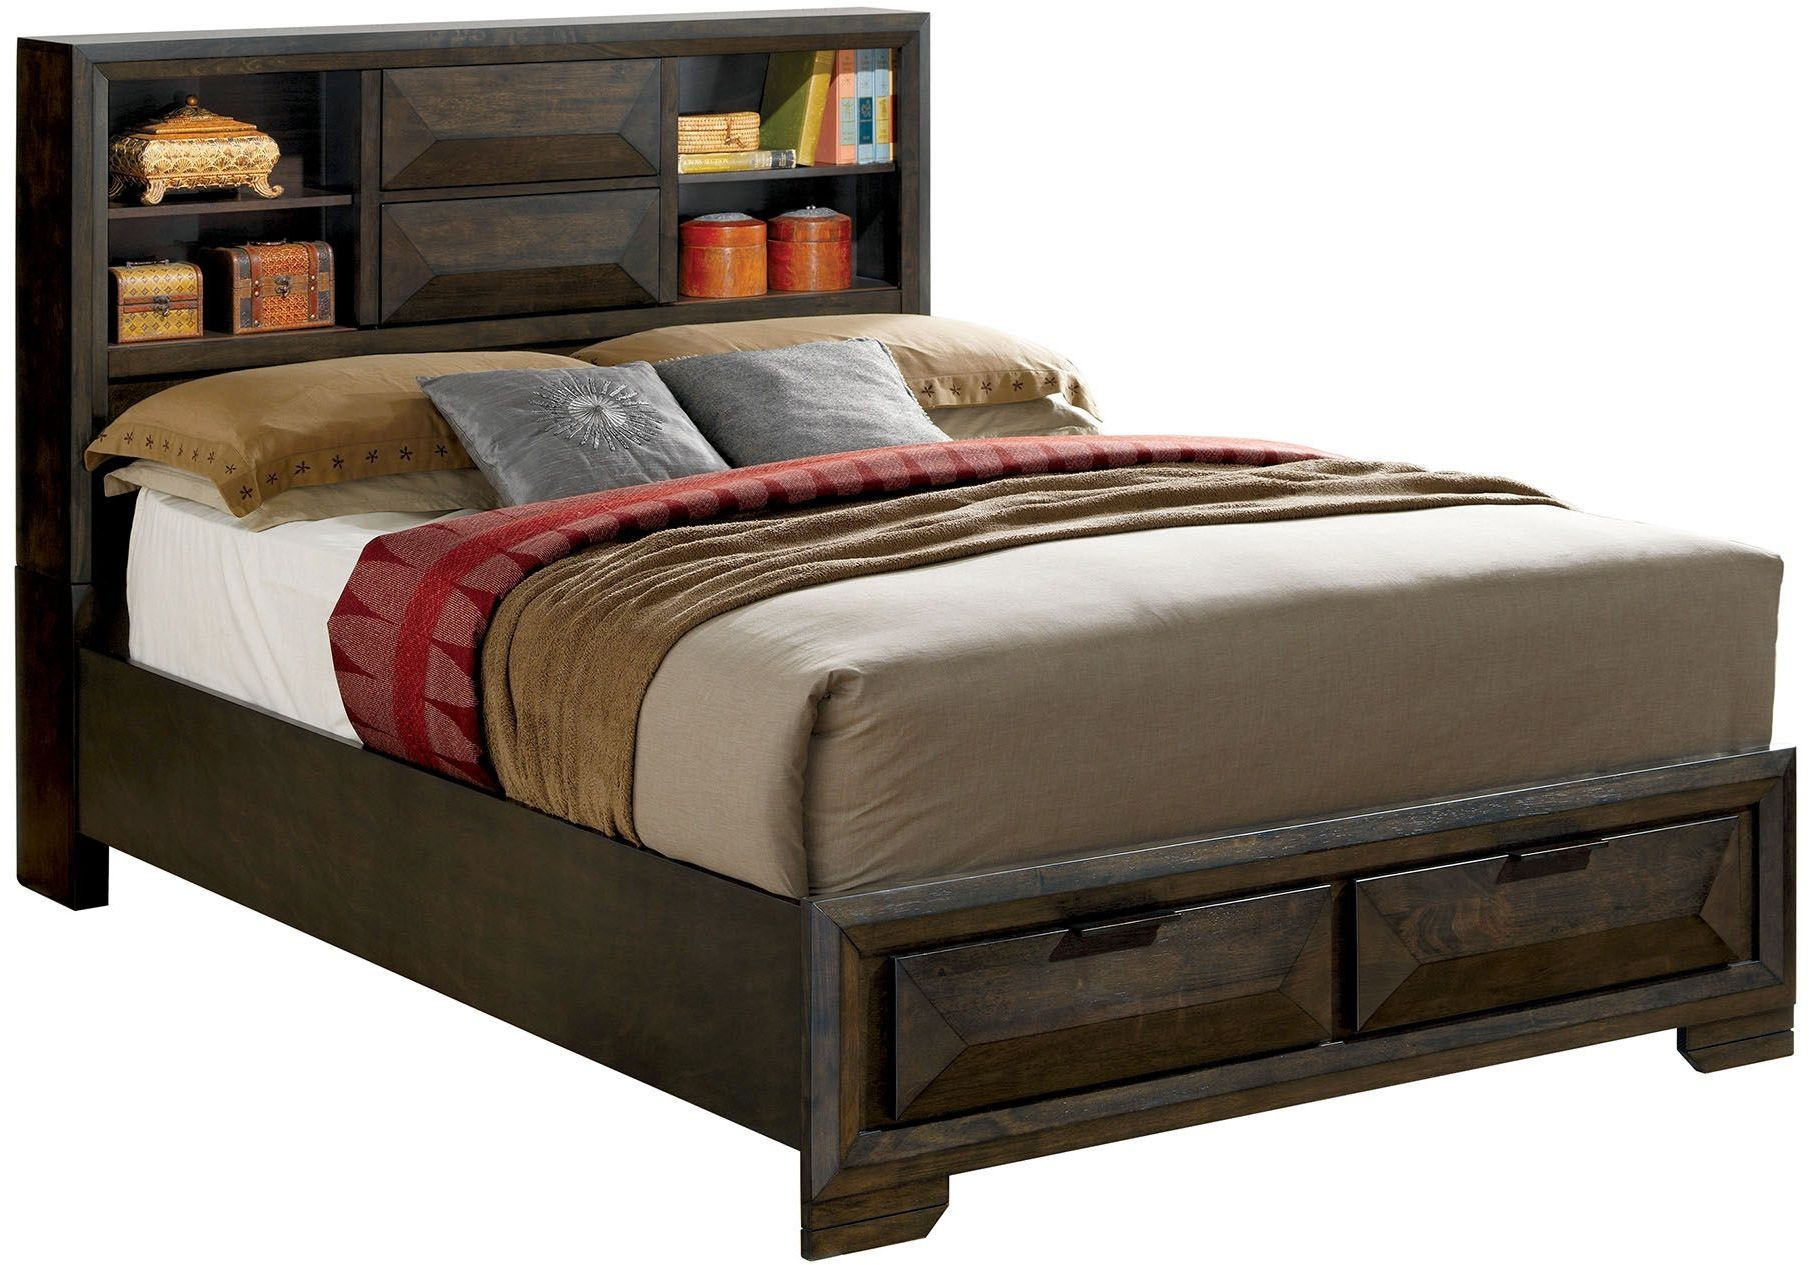 Nikomedes Espresso Cal.King Platform Storage Bed from Furniture of America | Coleman Furniture